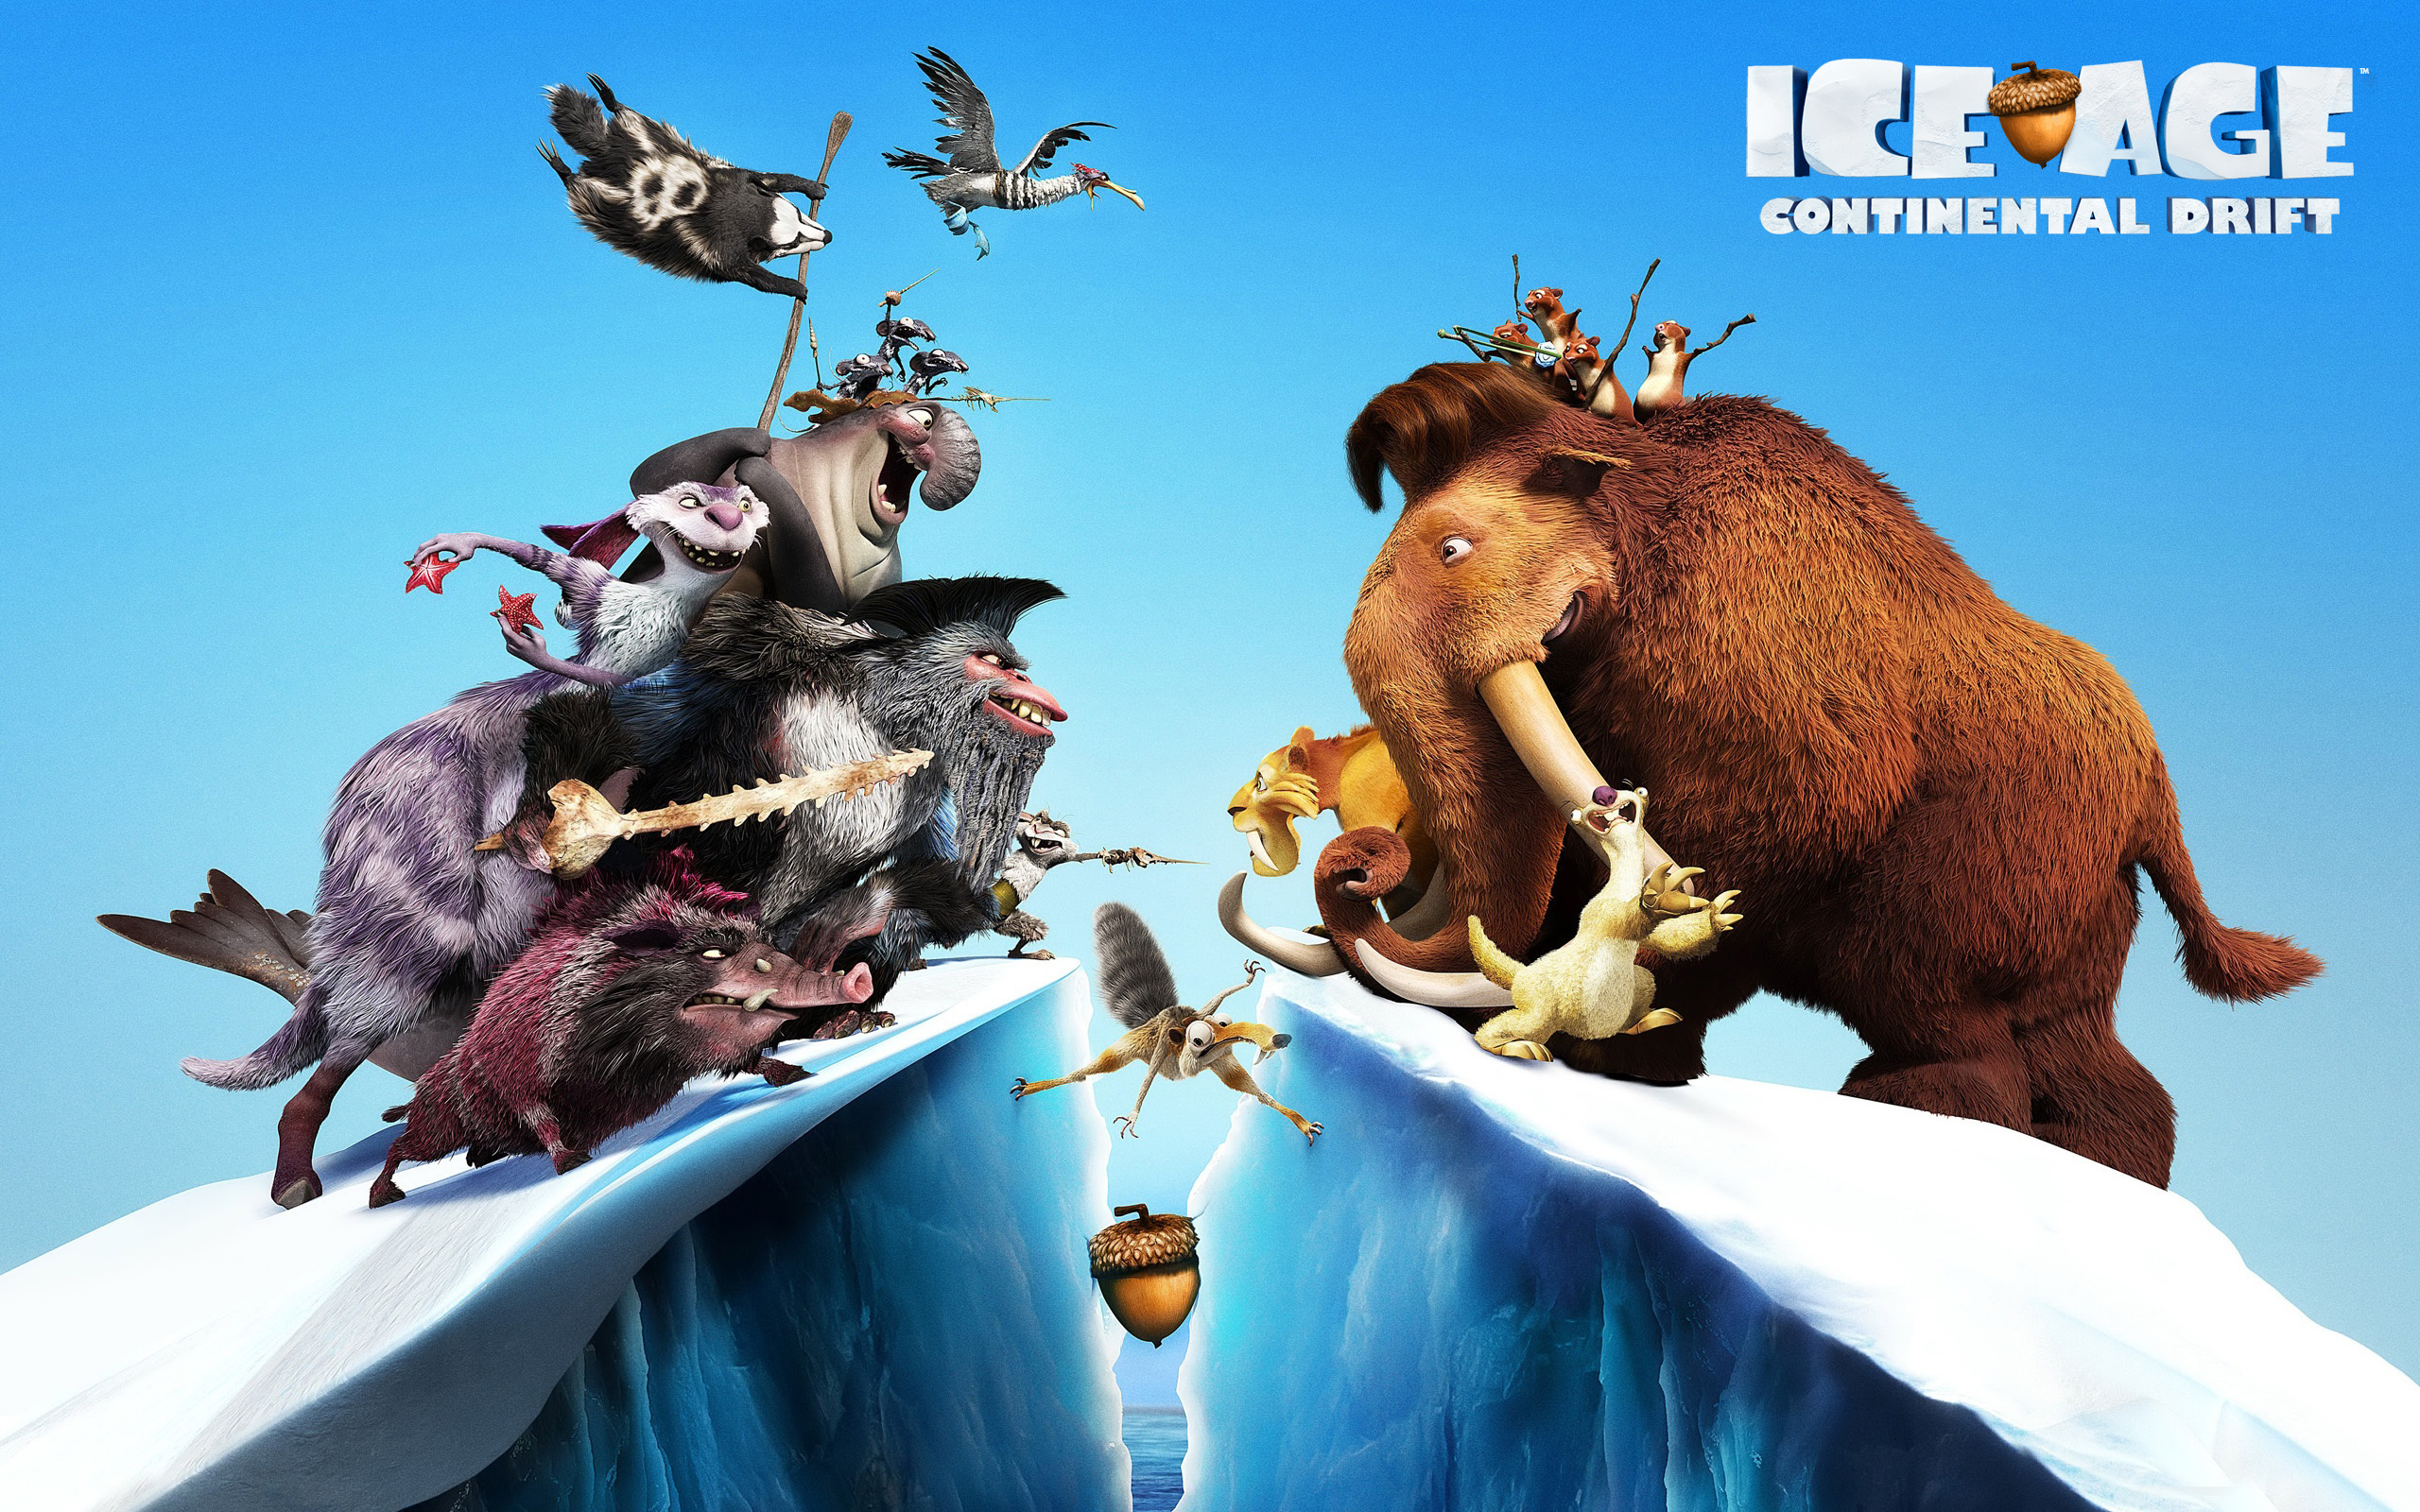 https://i2.wp.com/www.richardcrouse.ca/wp-content/uploads/2013/09/ice_age_4_continental_drift-wide1.jpg